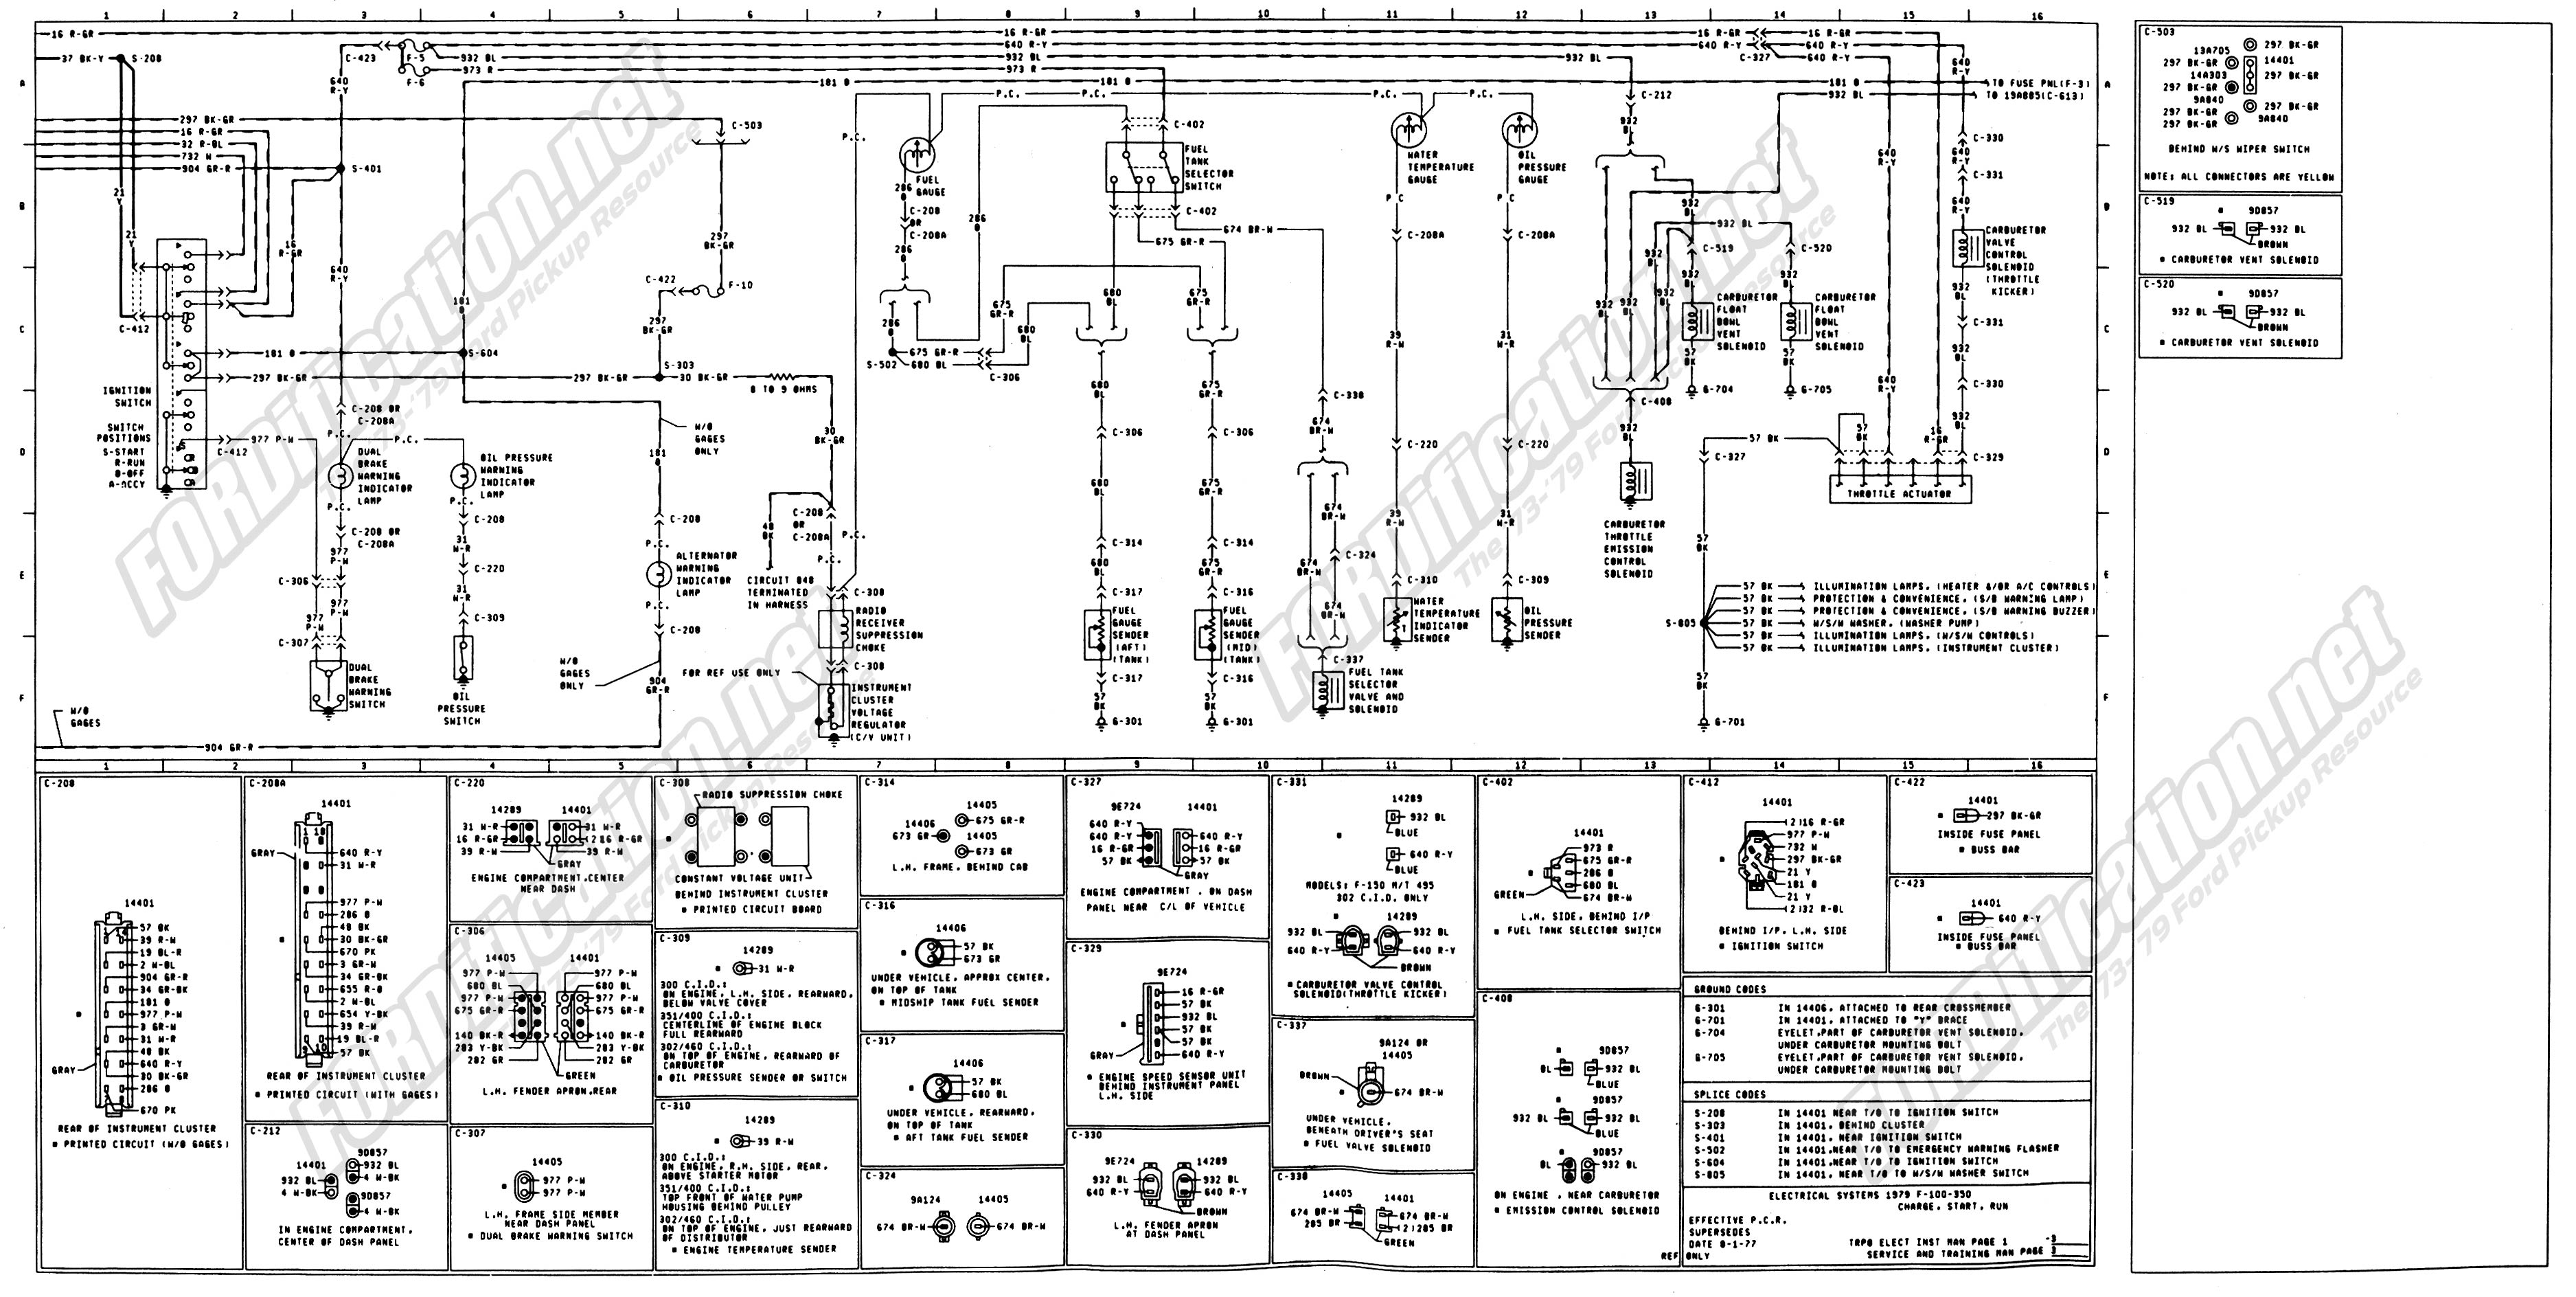 wiring_79master_3of9 1973 1979 ford truck wiring diagrams & schematics fordification net 2006 ford powerstroke wiring diagram at gsmx.co